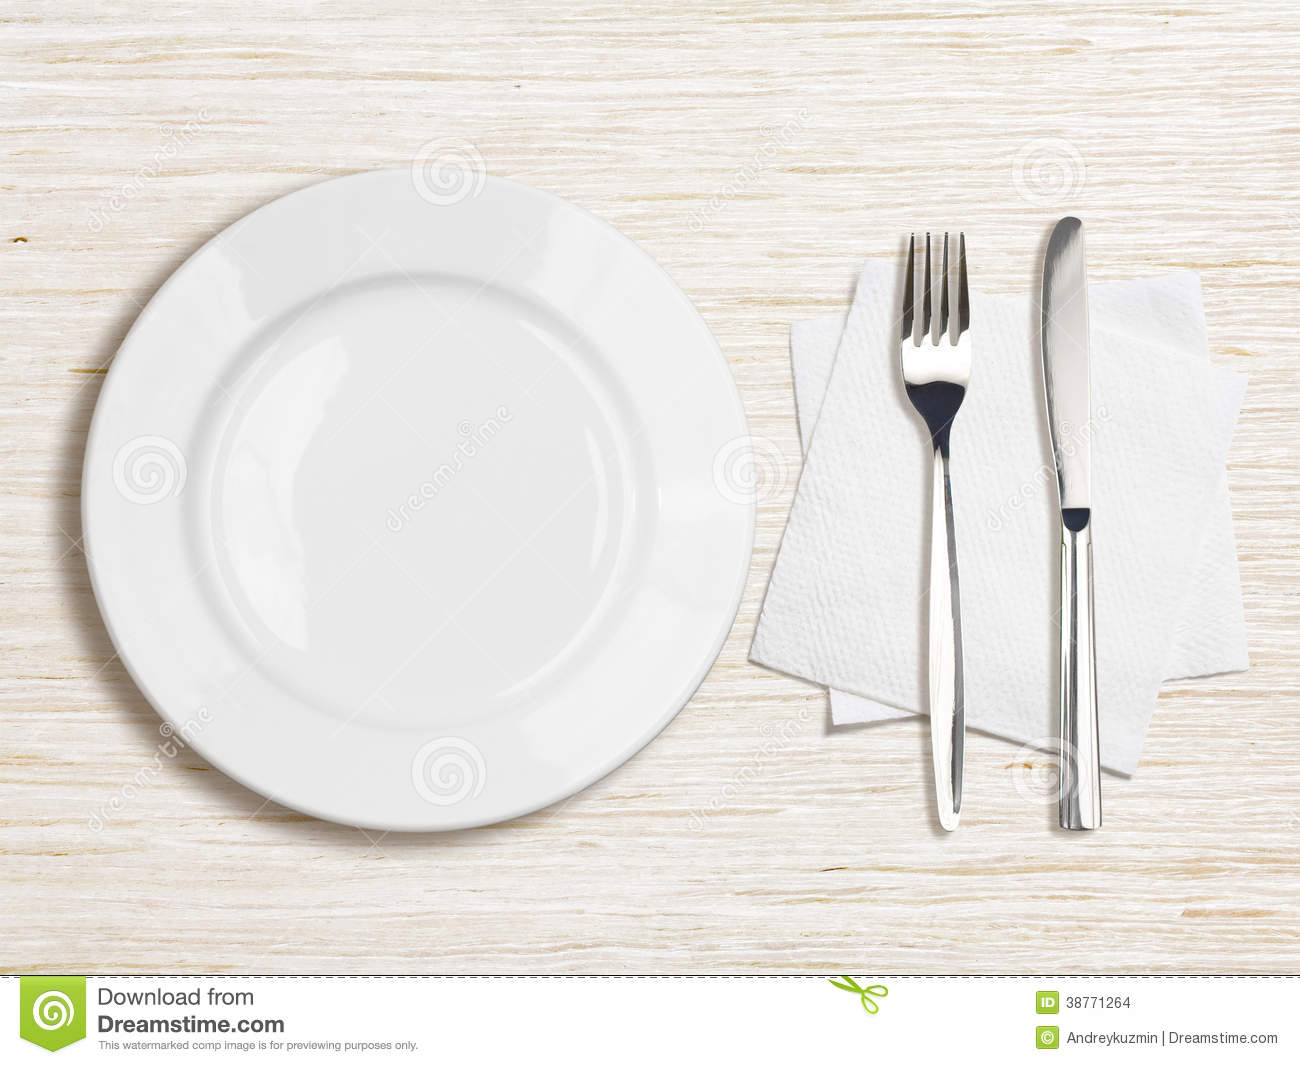 An empty white dish with knife and fork on a table - White Plate Knife Fork And Napkin Top View Stock Images